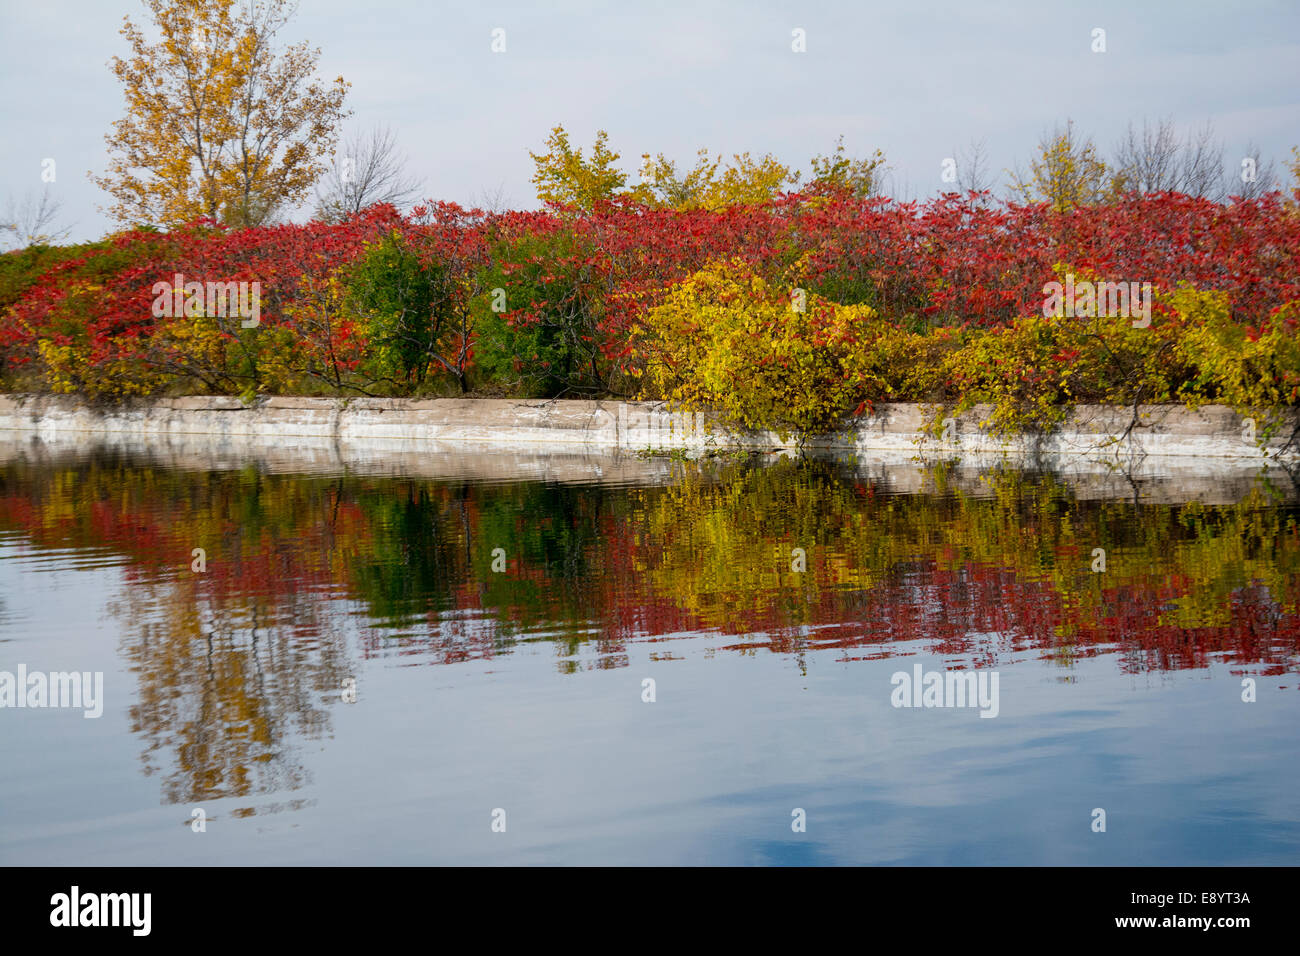 A view of the walls of the Soulange Canal. - Stock Image